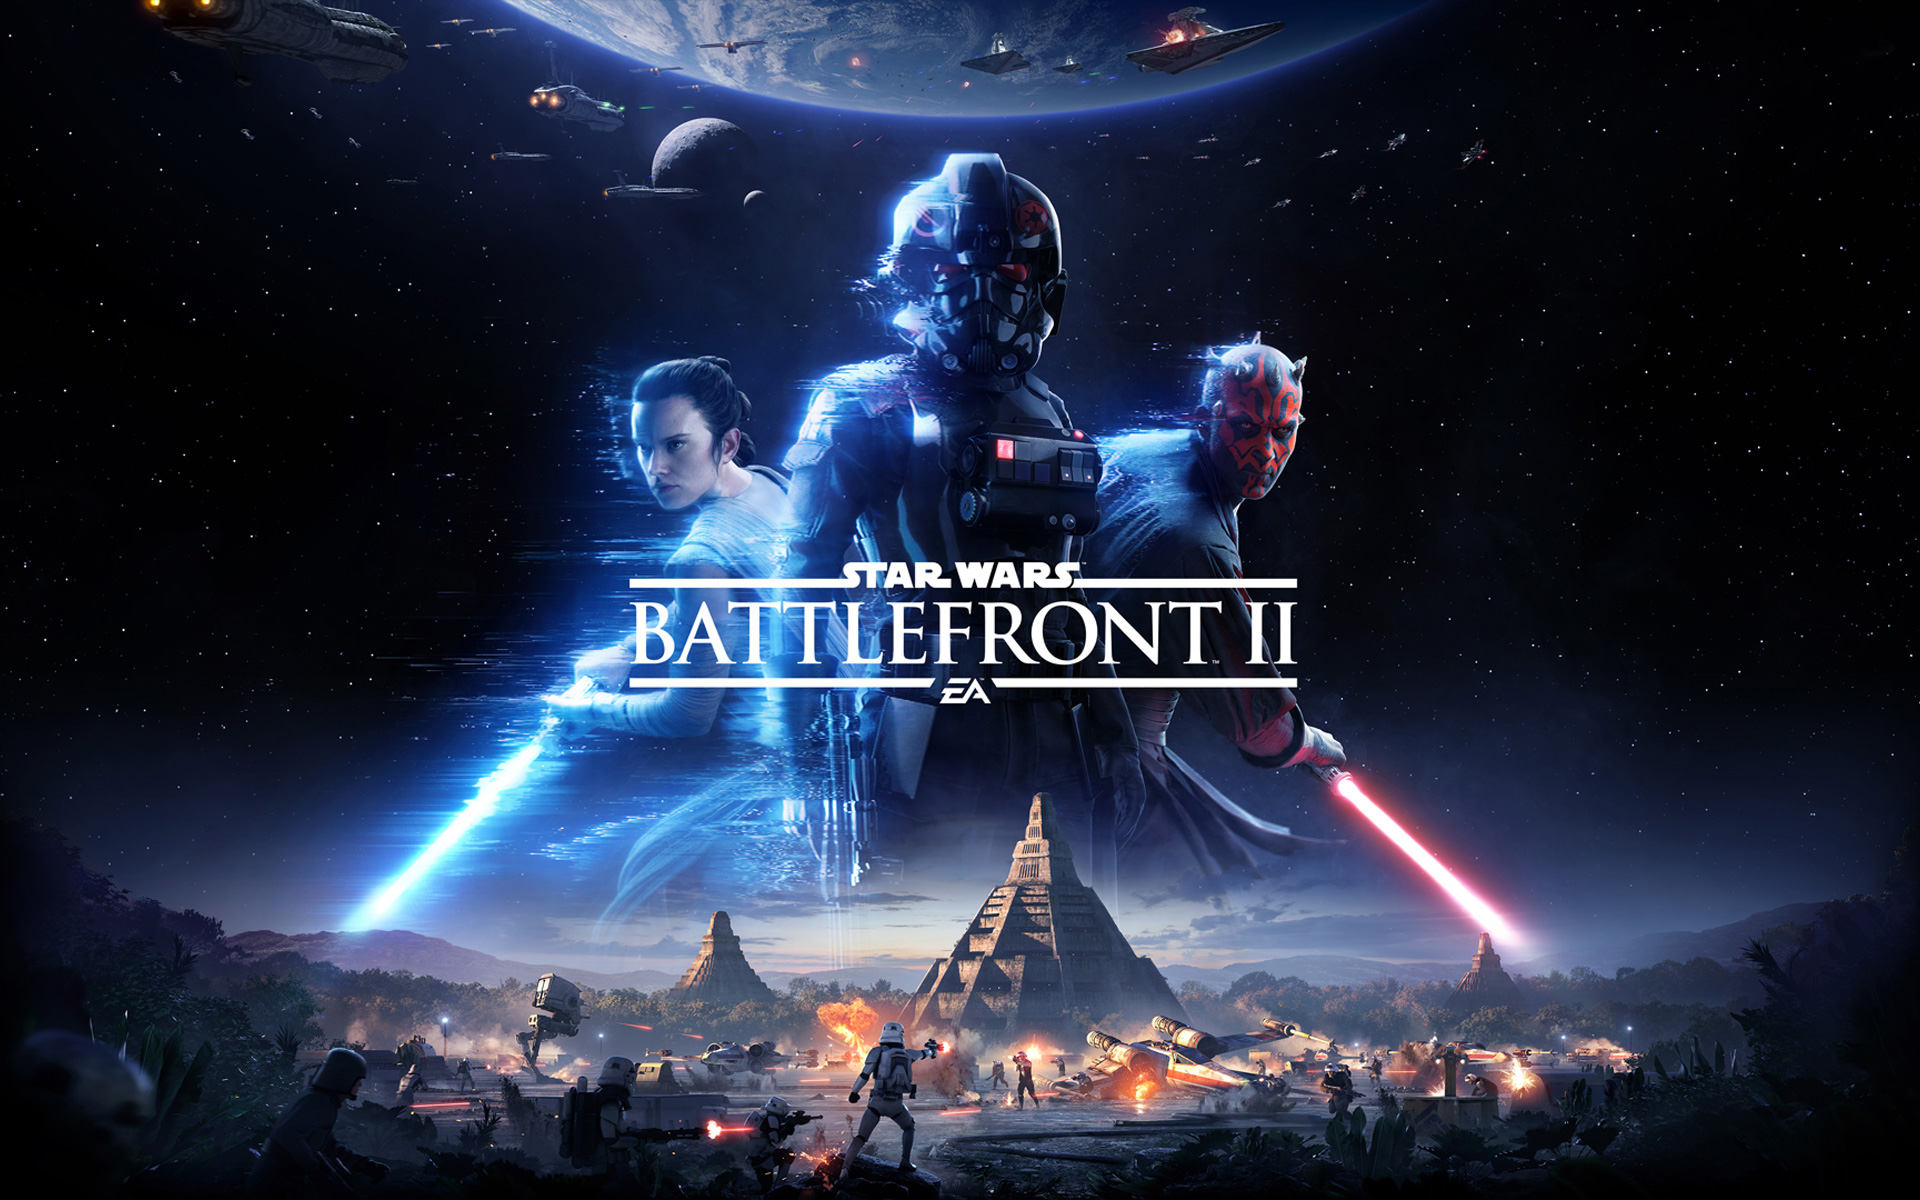 Star Wars: Battlefront II Wallpaper in 1920x1200